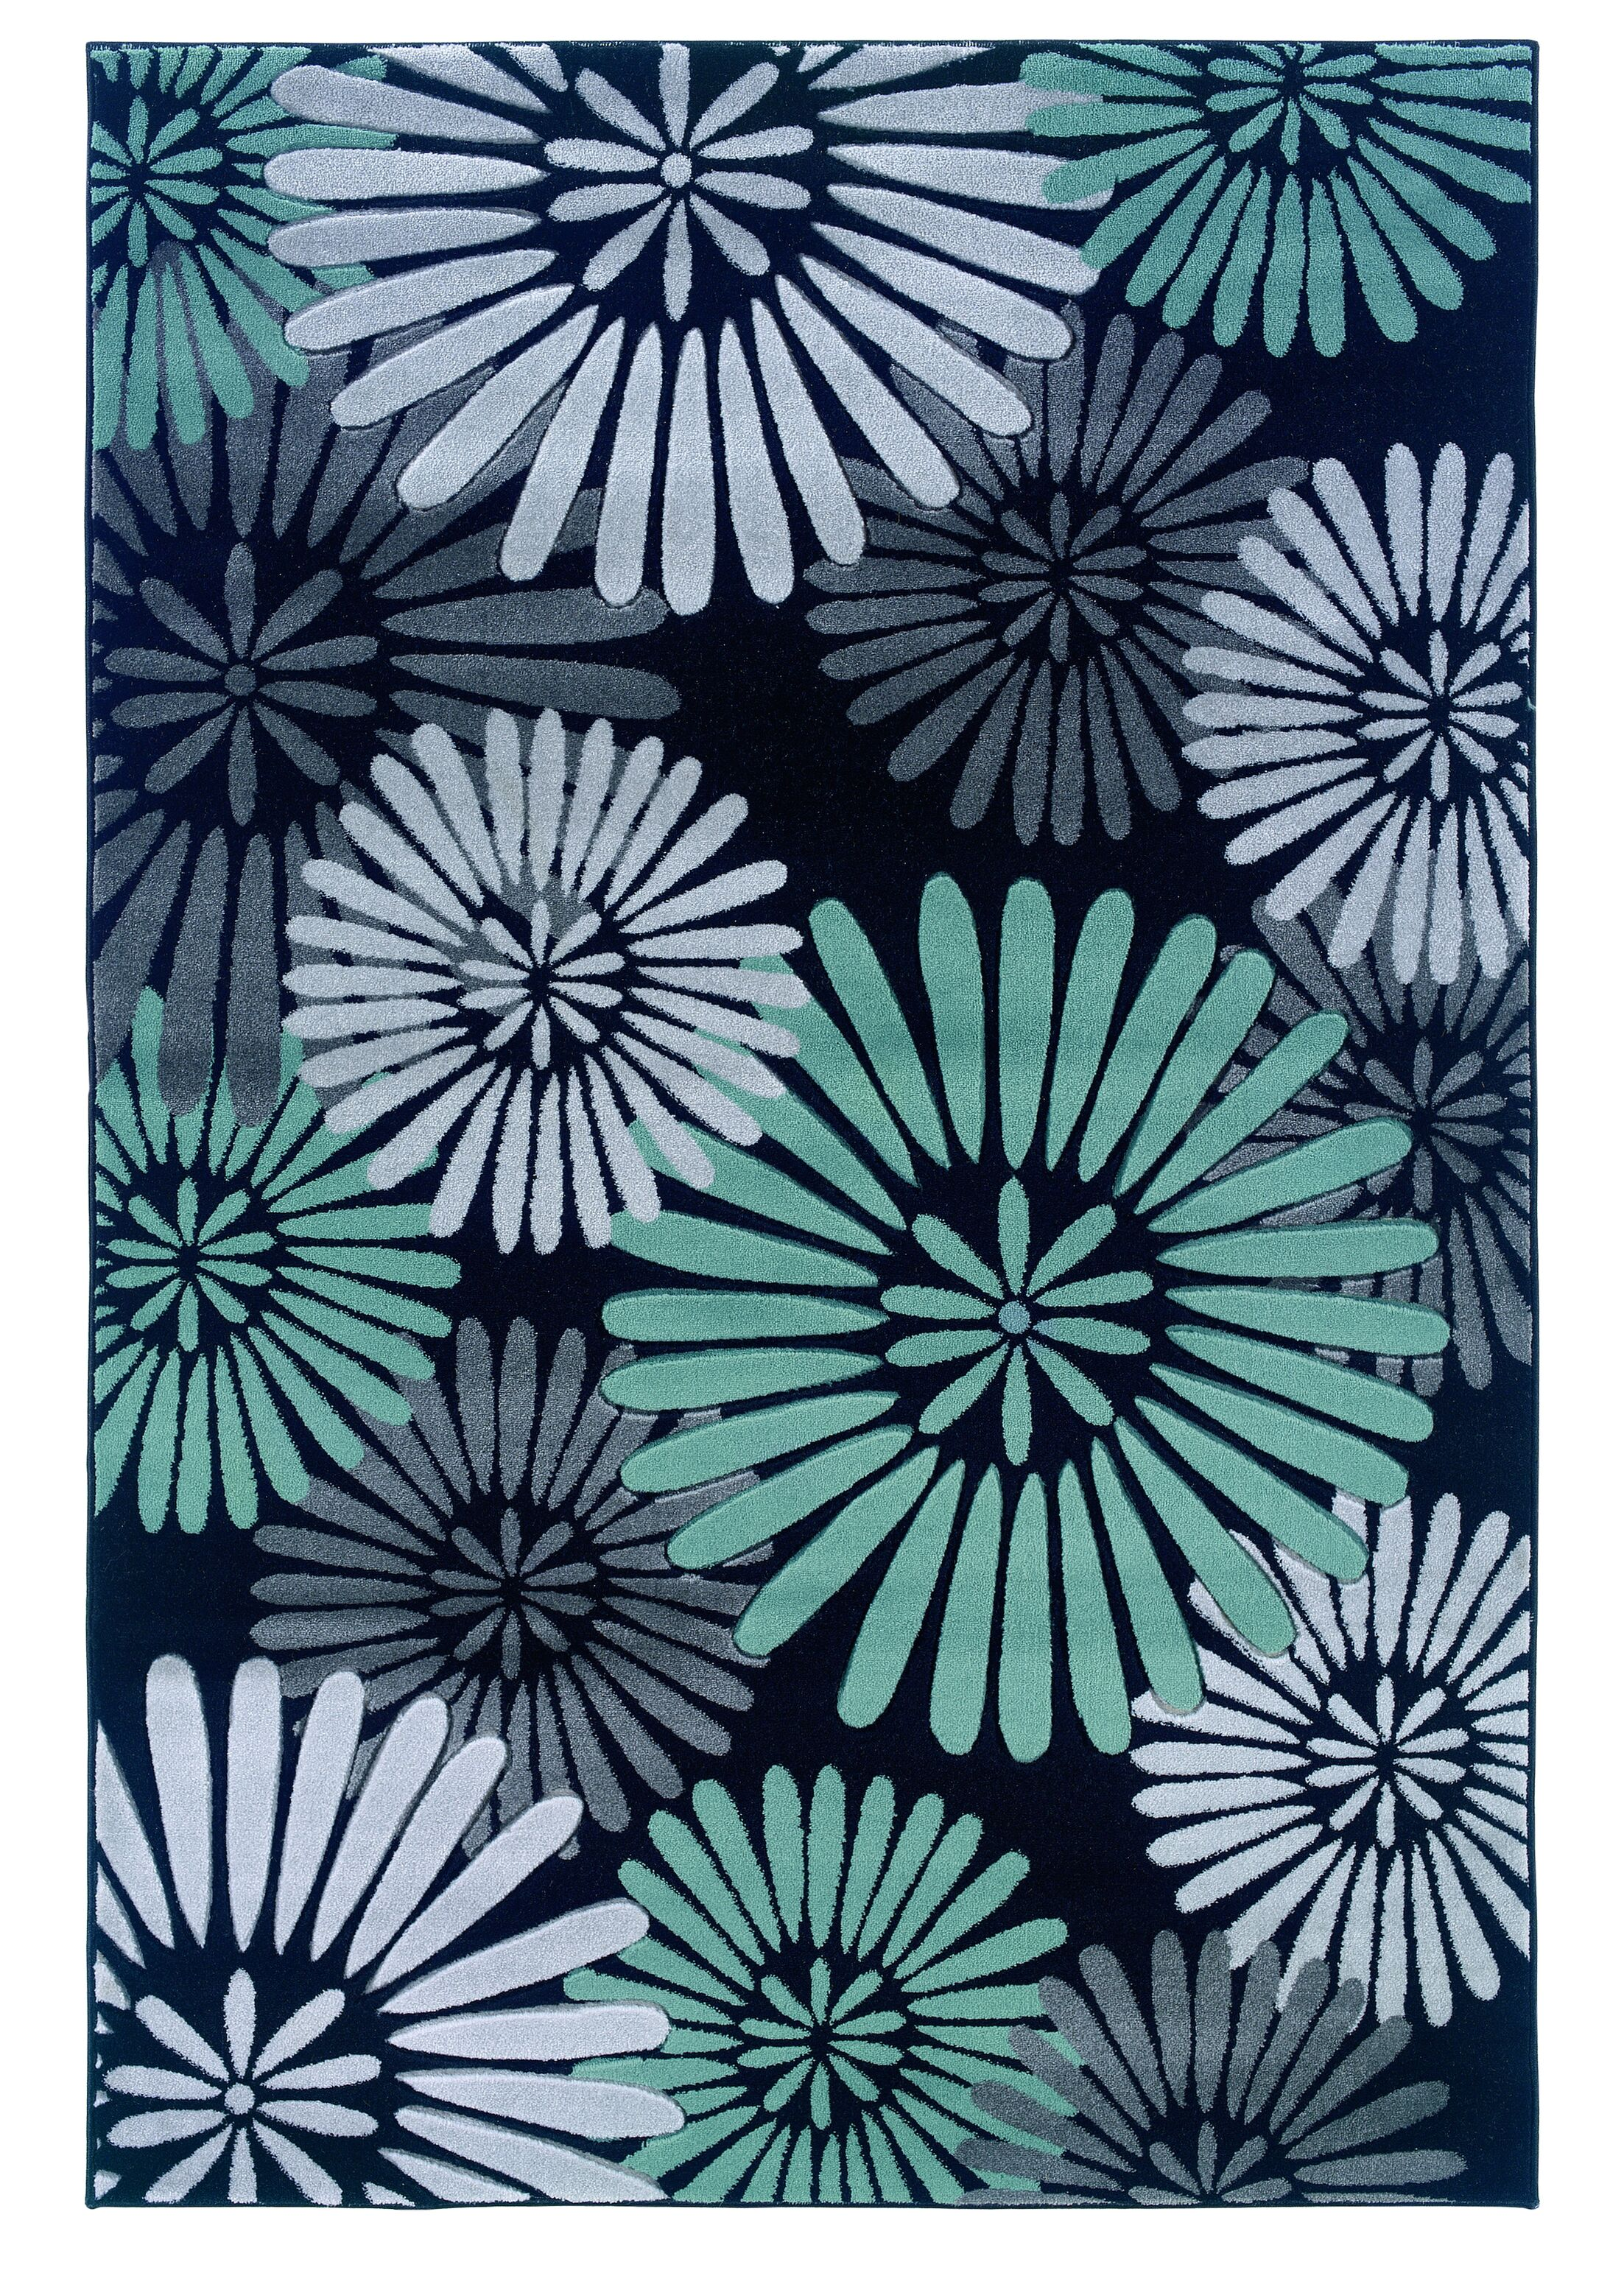 Cheyanne Black/Blue Area Rug Rug Size: Rectangle 8' x 10'3